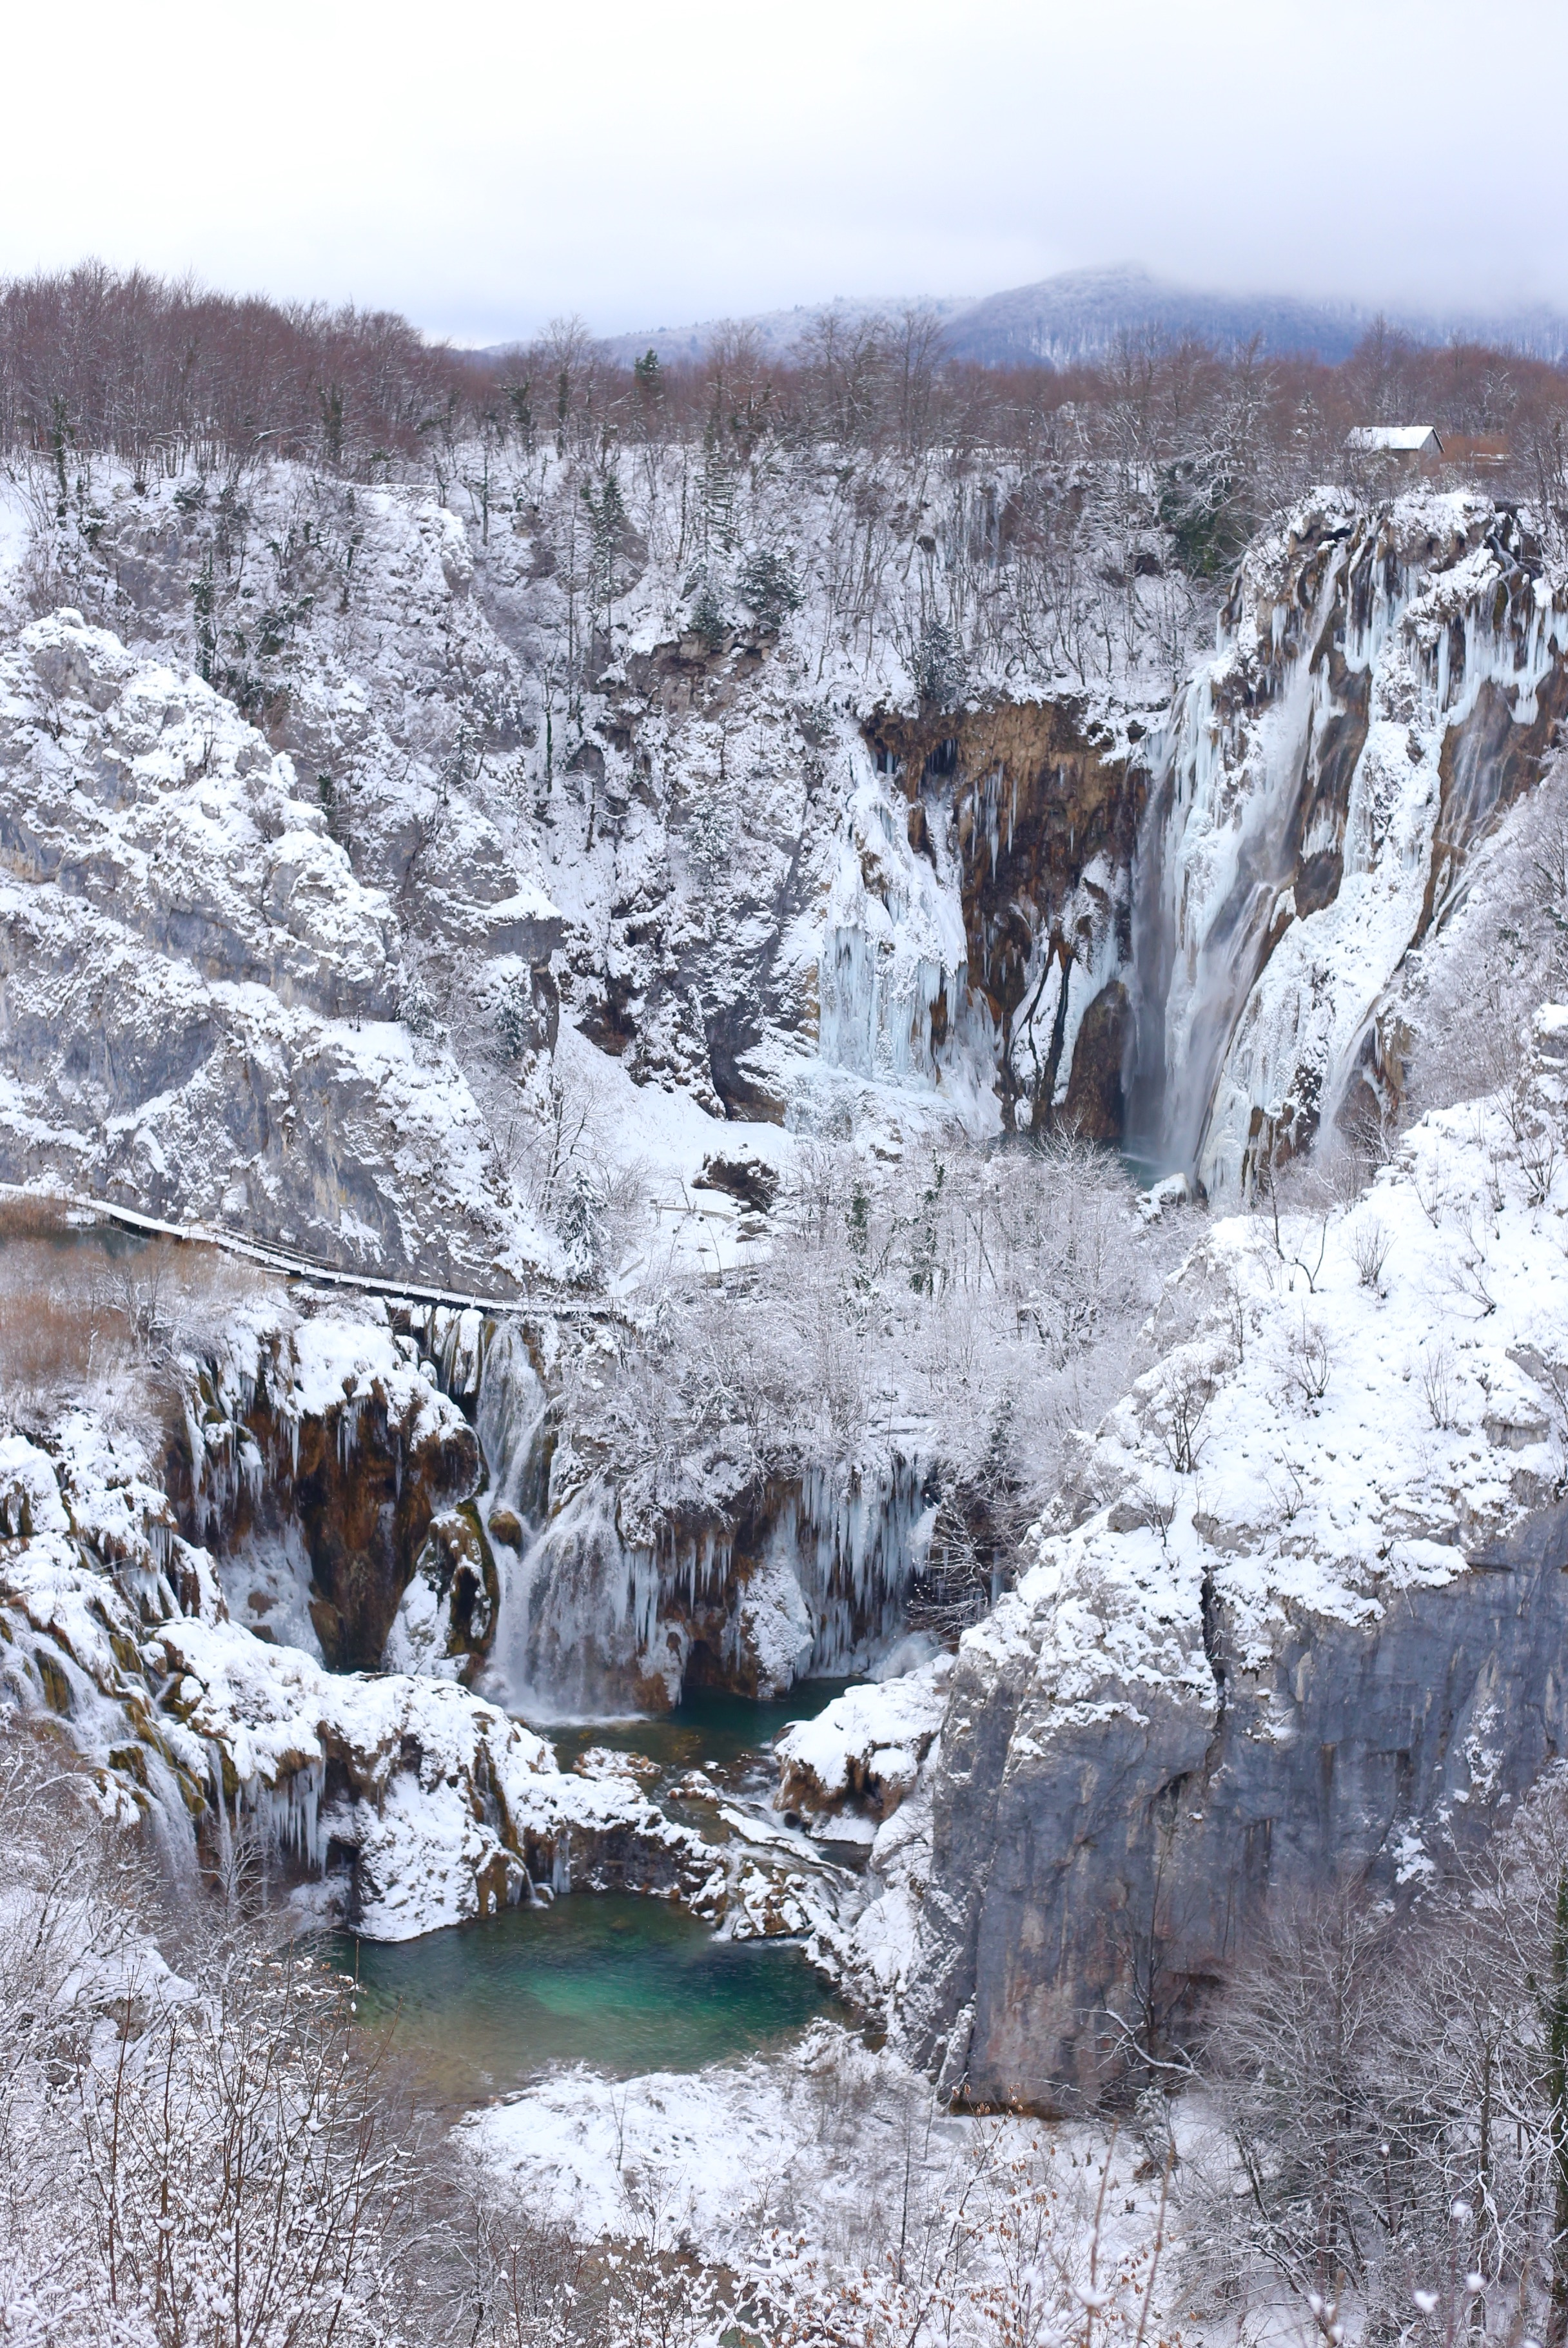 The lower lakes of Plitvice Park in winter. The pools are very blue.